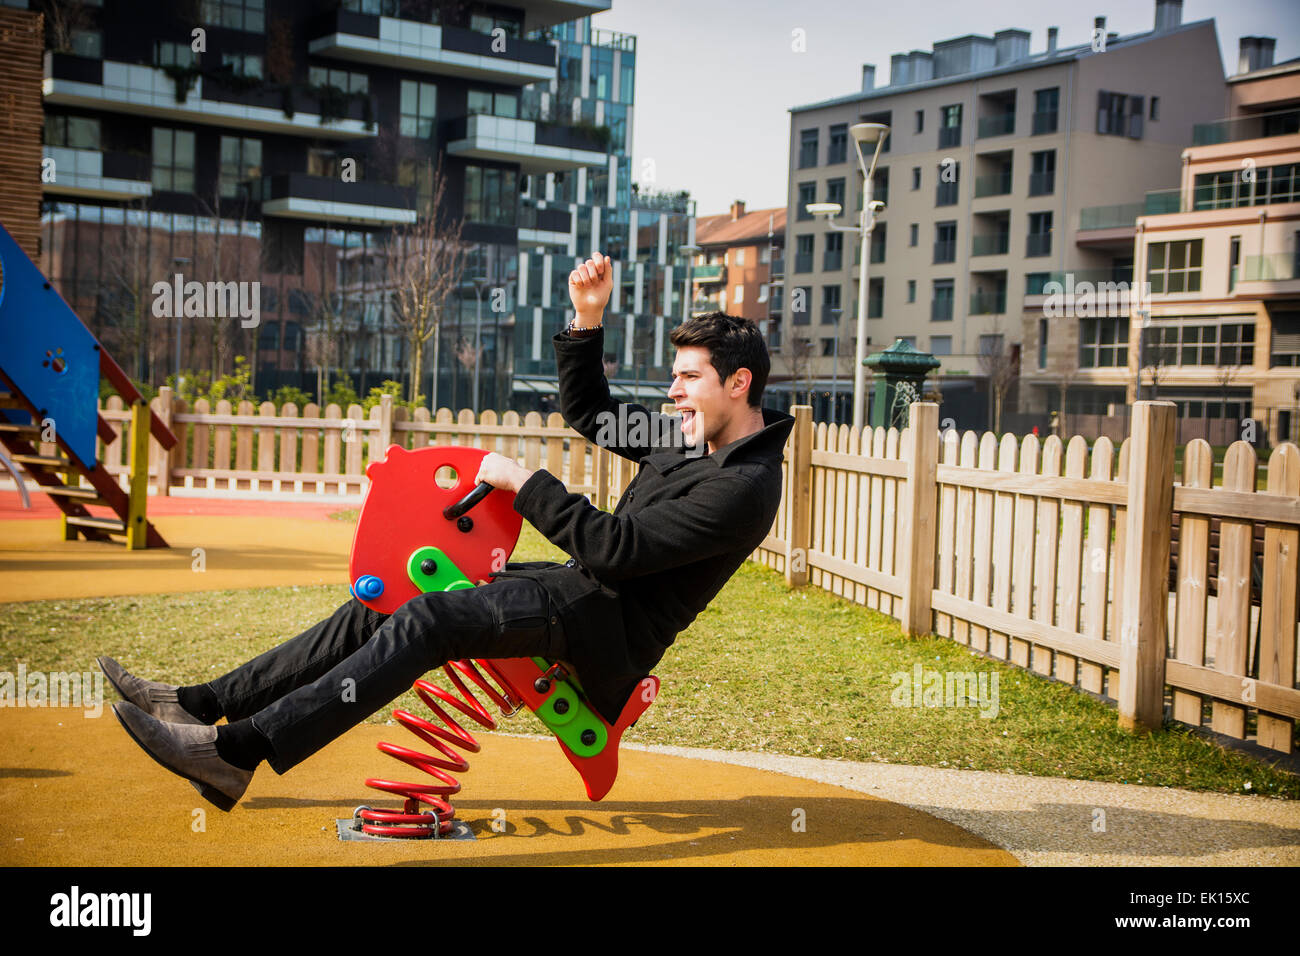 Young man reliving his childhood plying in a children's playground riding on a colorful red spring seat with - Stock Image